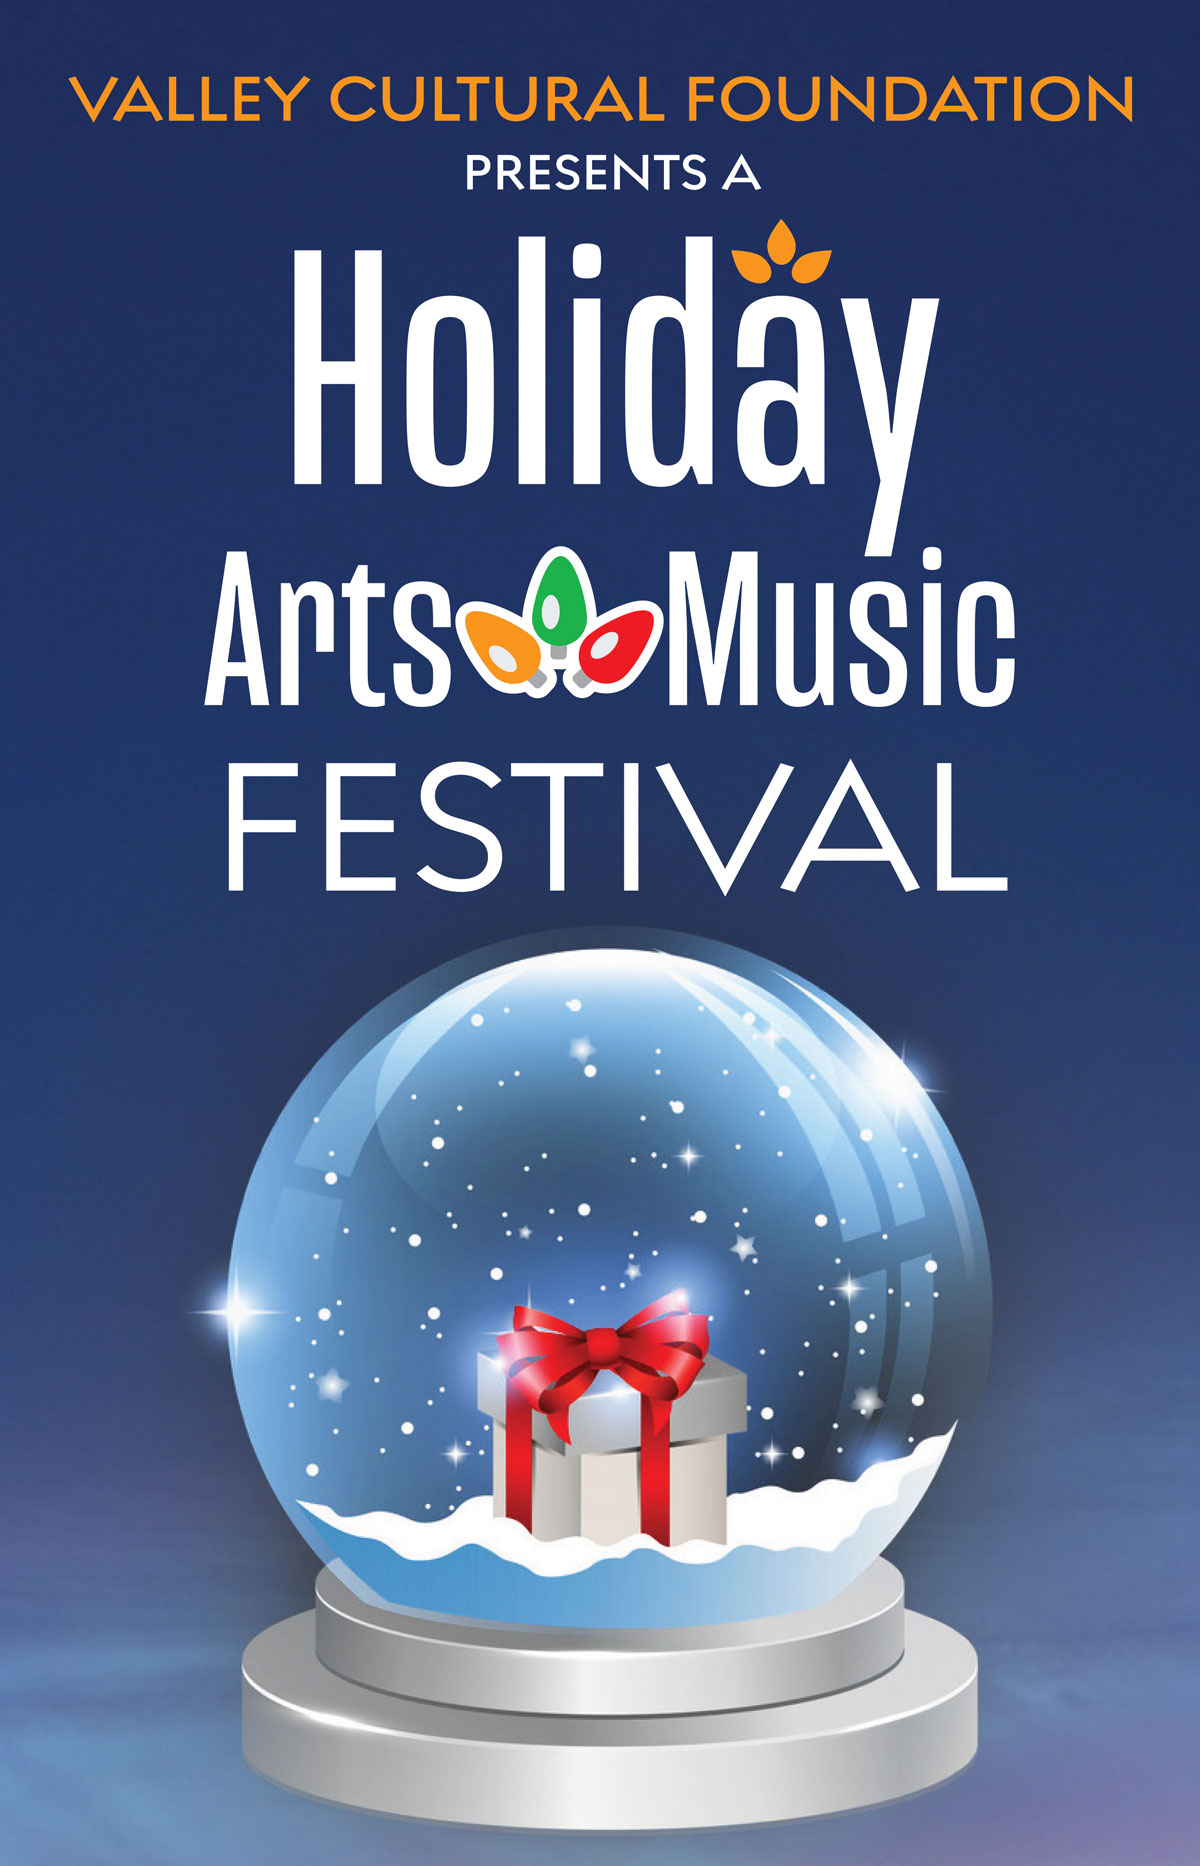 Holiday Arts and Music Festival save the date image